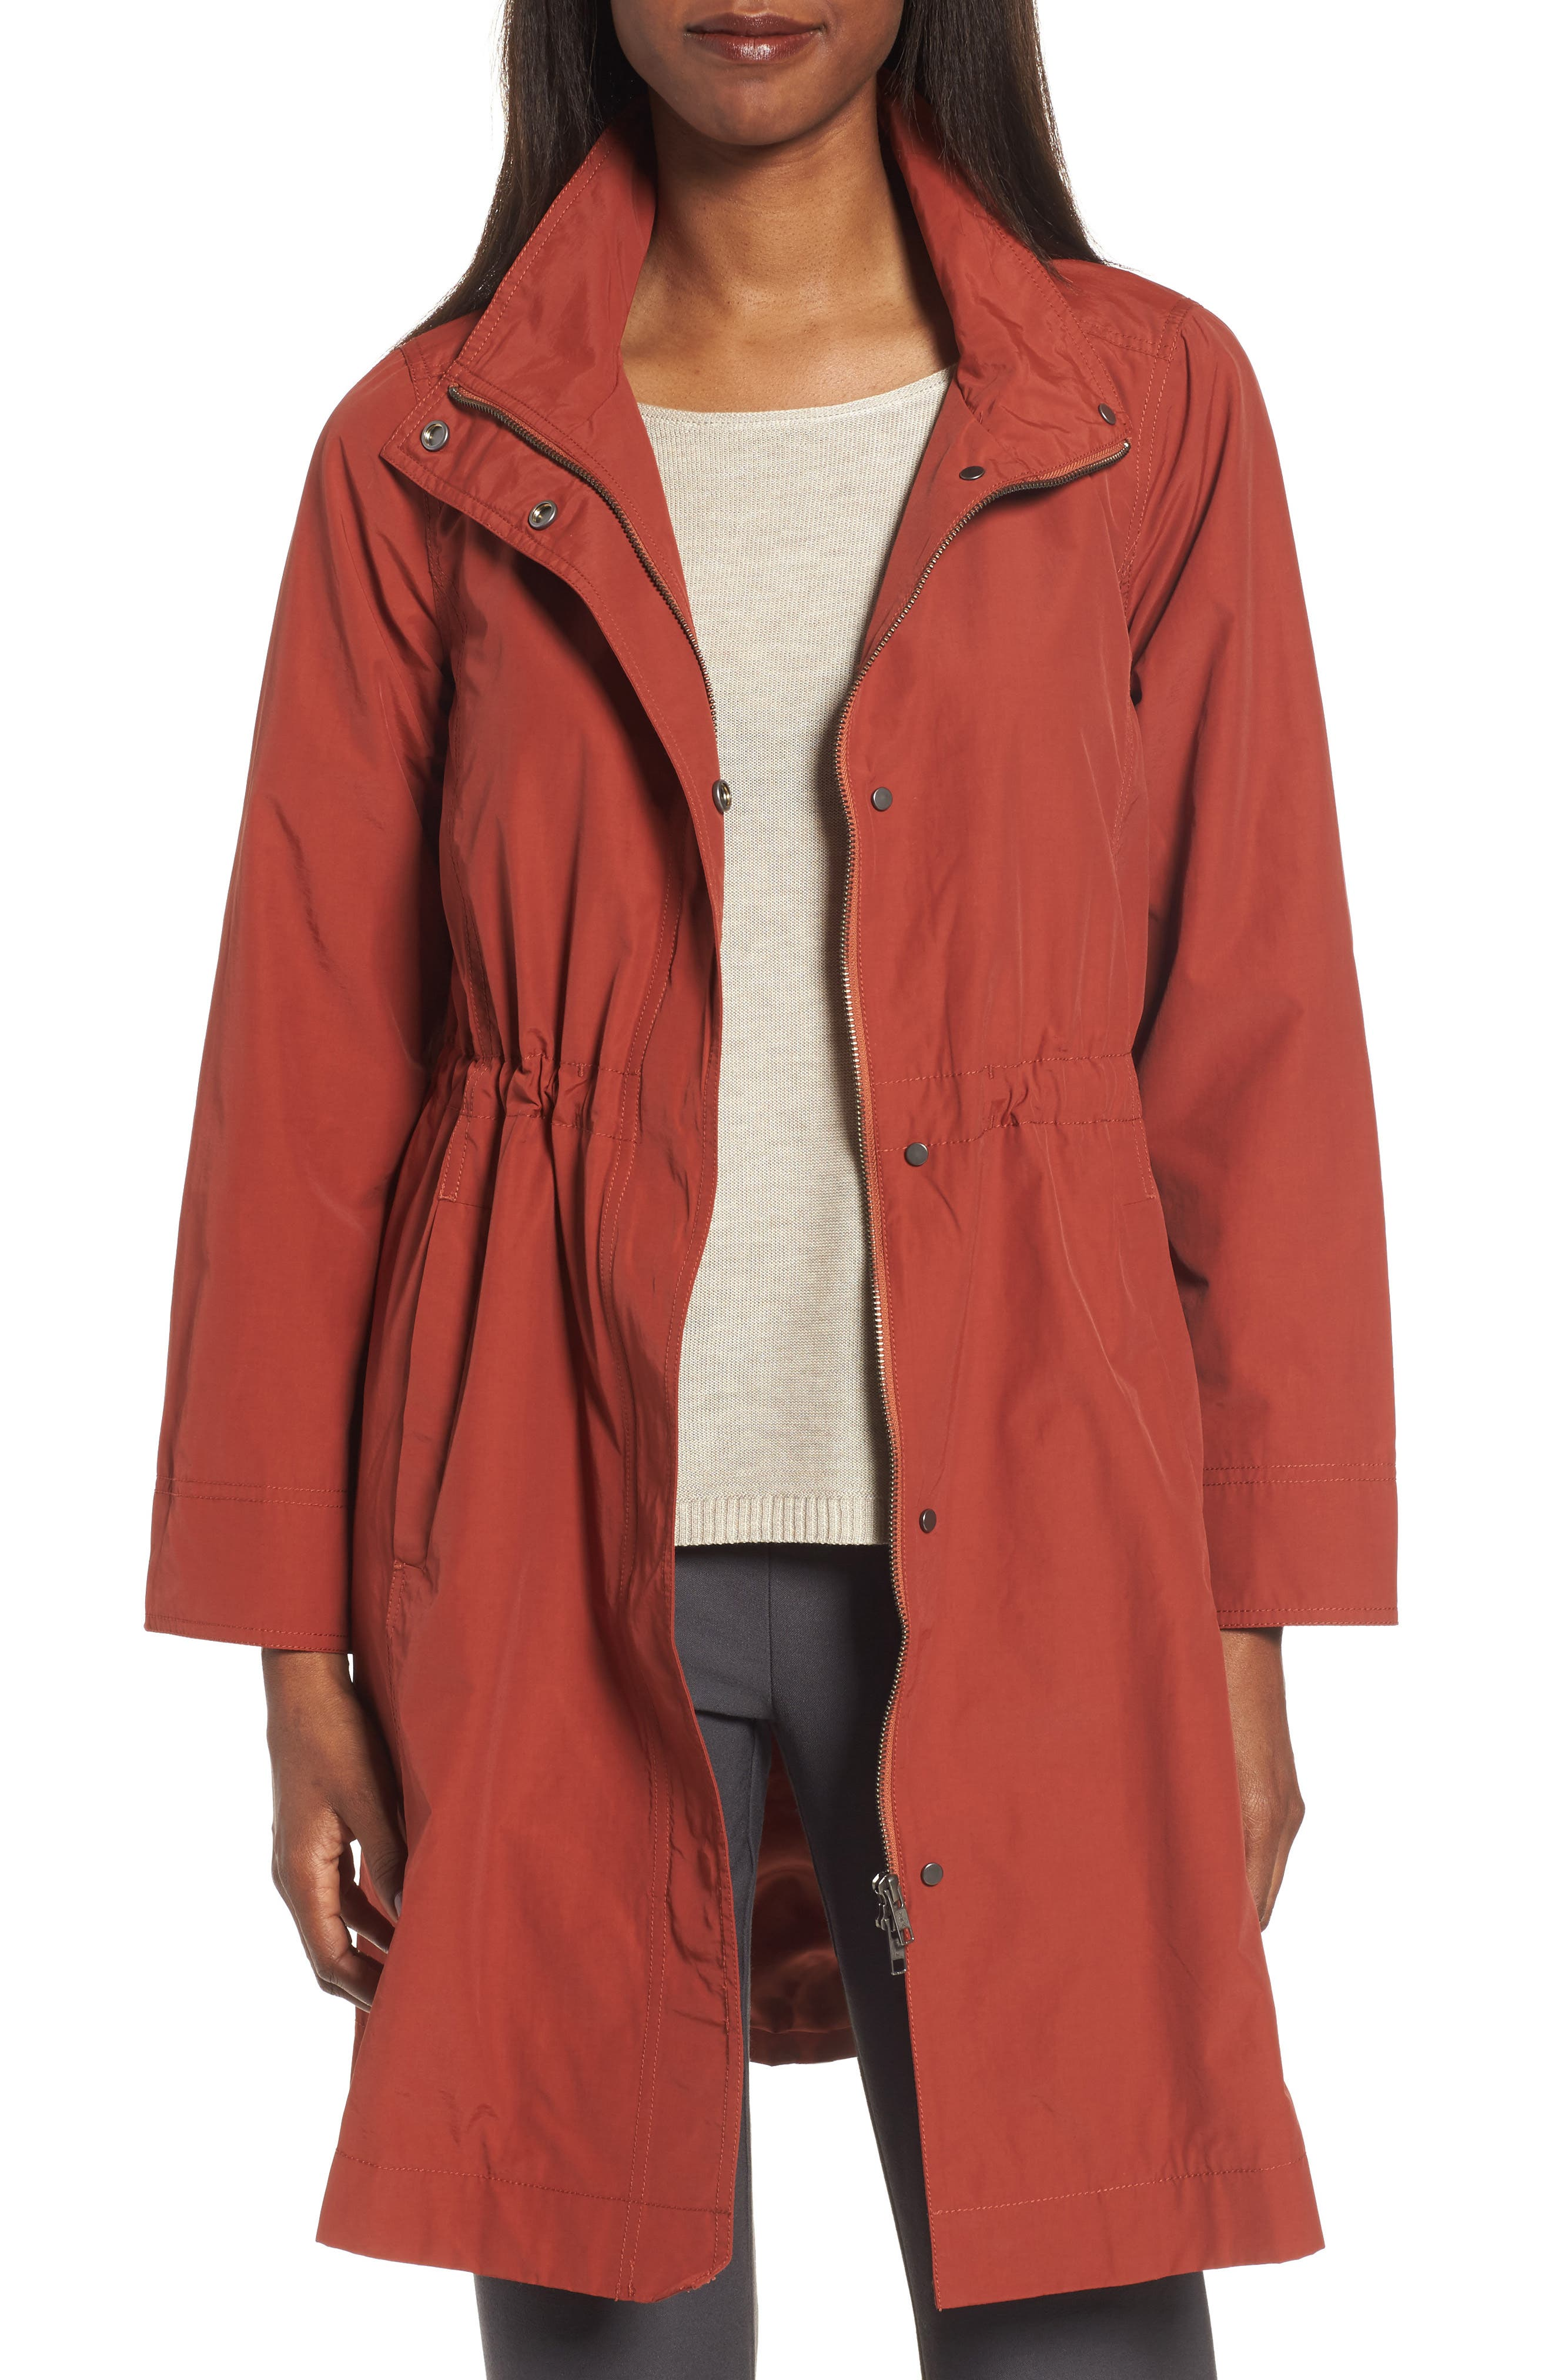 EILEEN FISHER Long Organic Cotton Blend Jacket